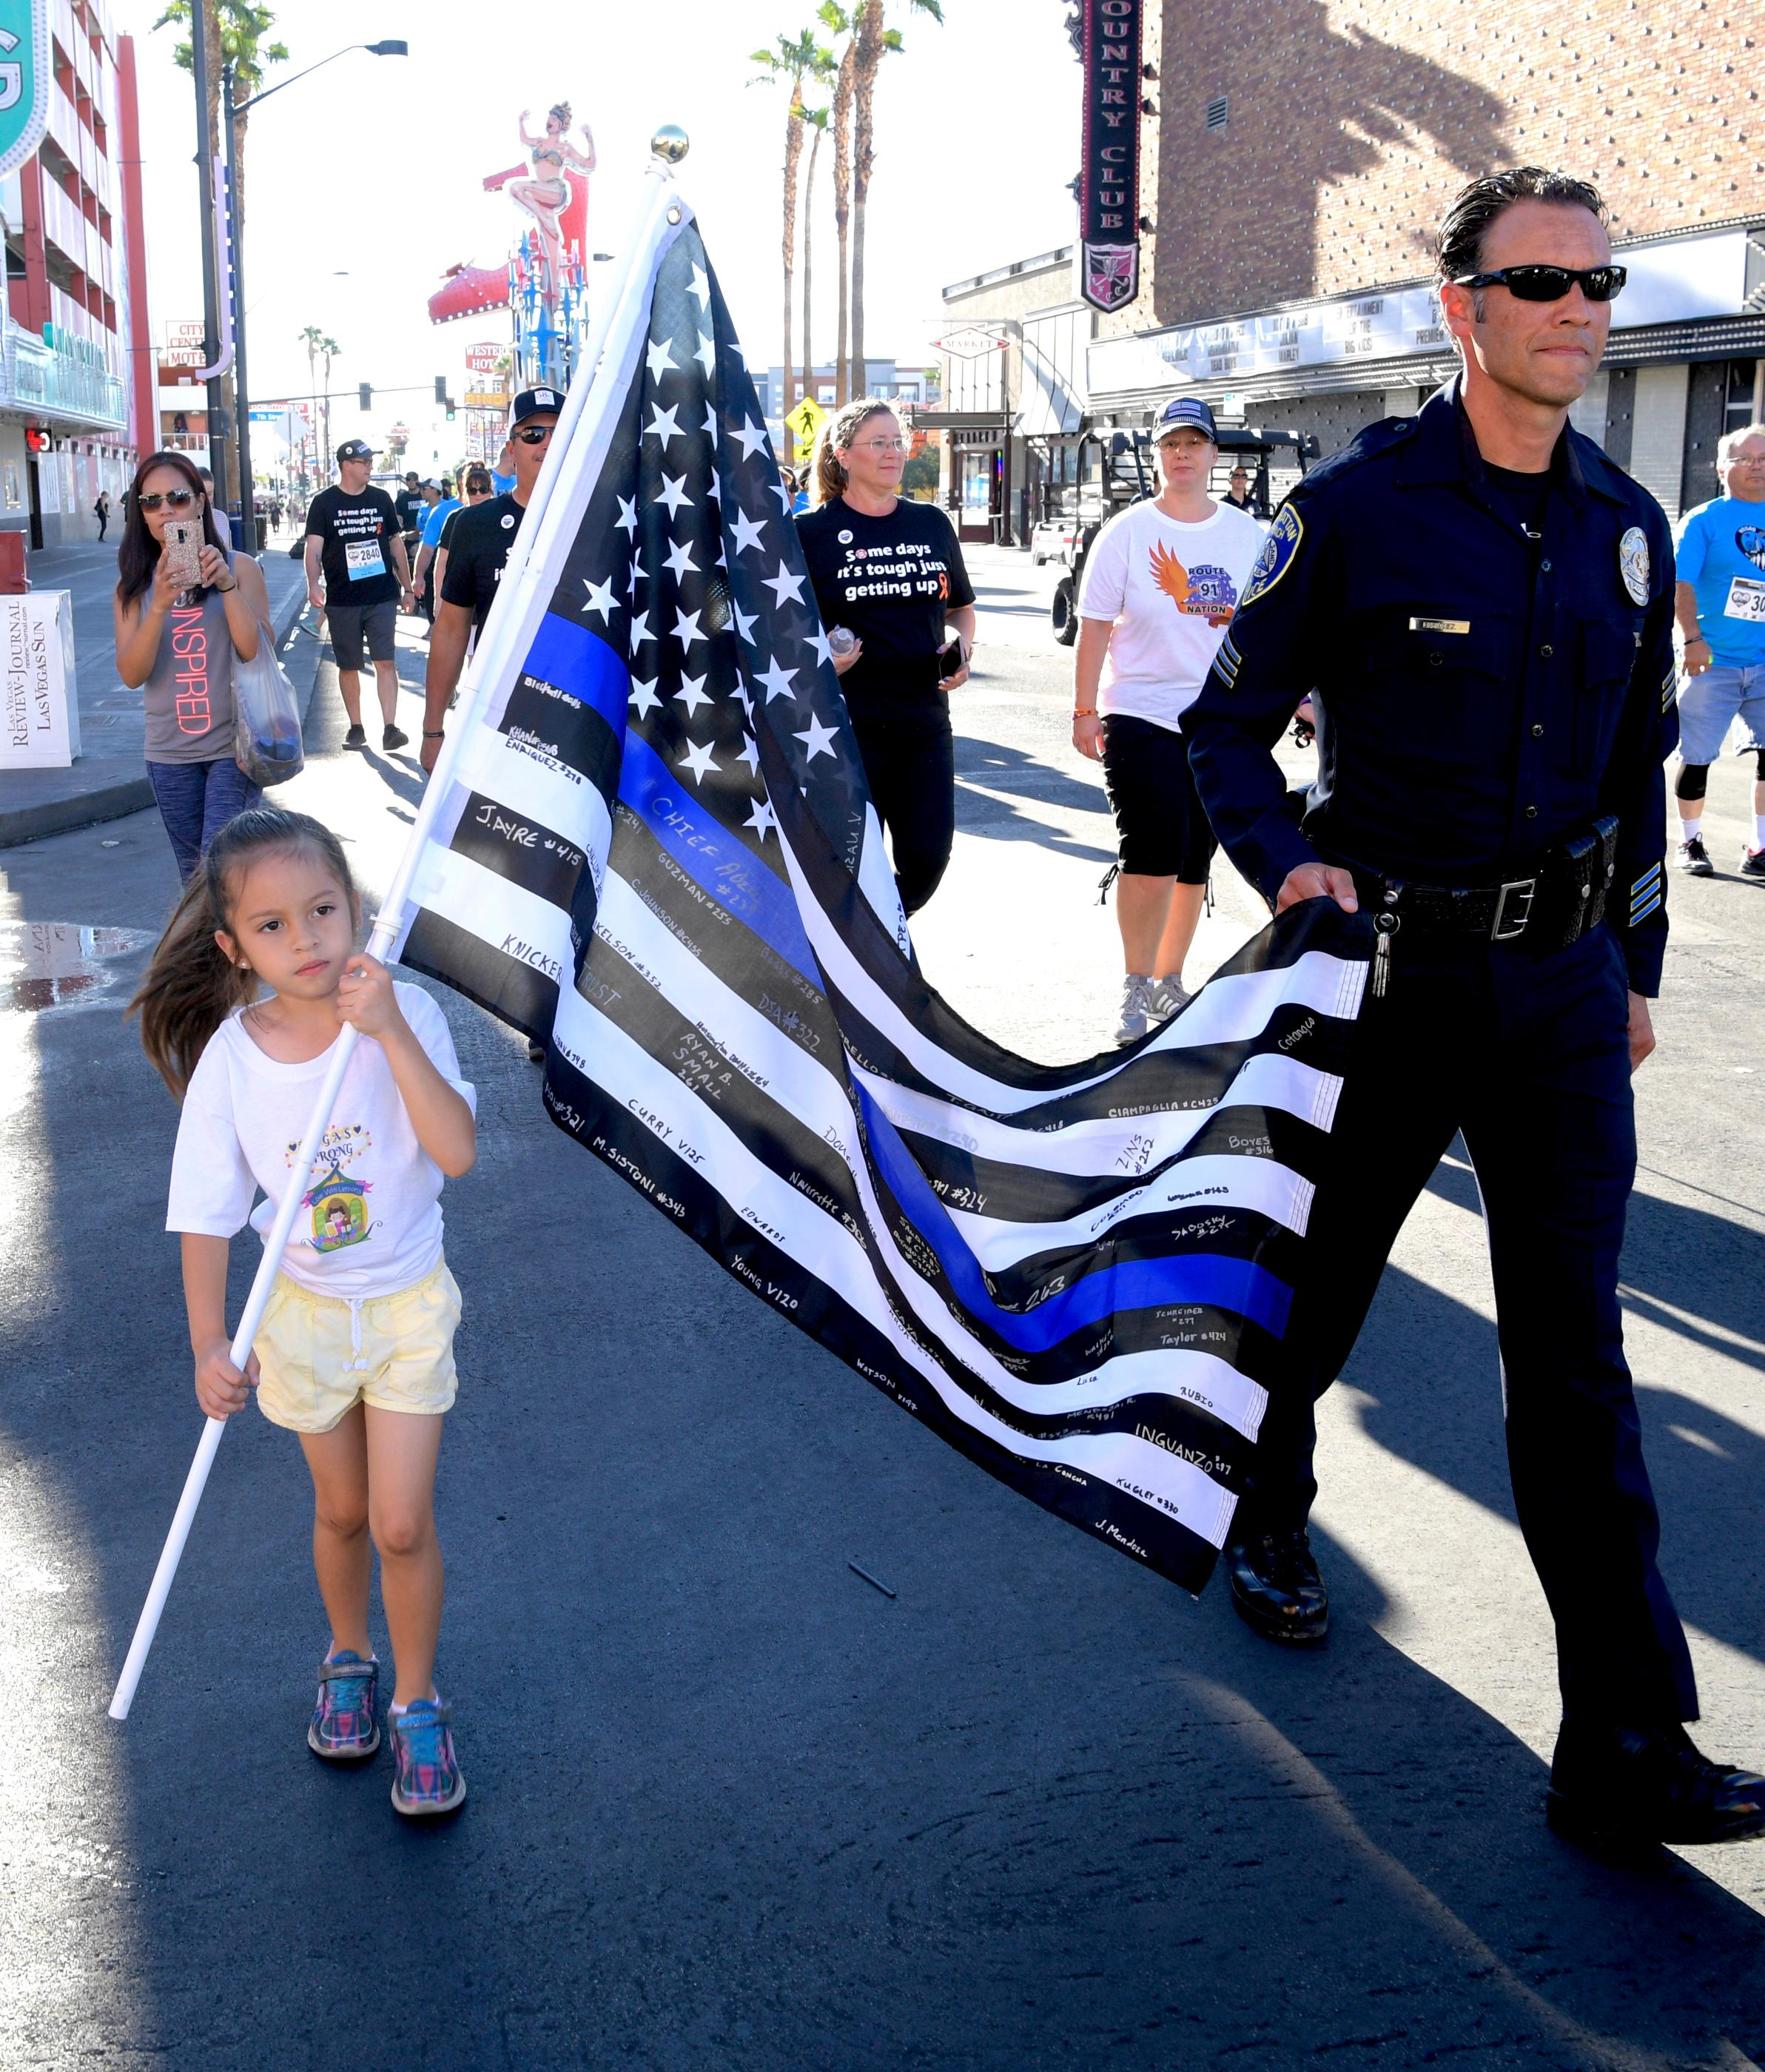 Vegas Strong 5K/1-Mile event is held downtown Las Vegas. Sunday, September 30, 2018. CREDIT: Glenn Pinkerton/Las Vegas News Bureau